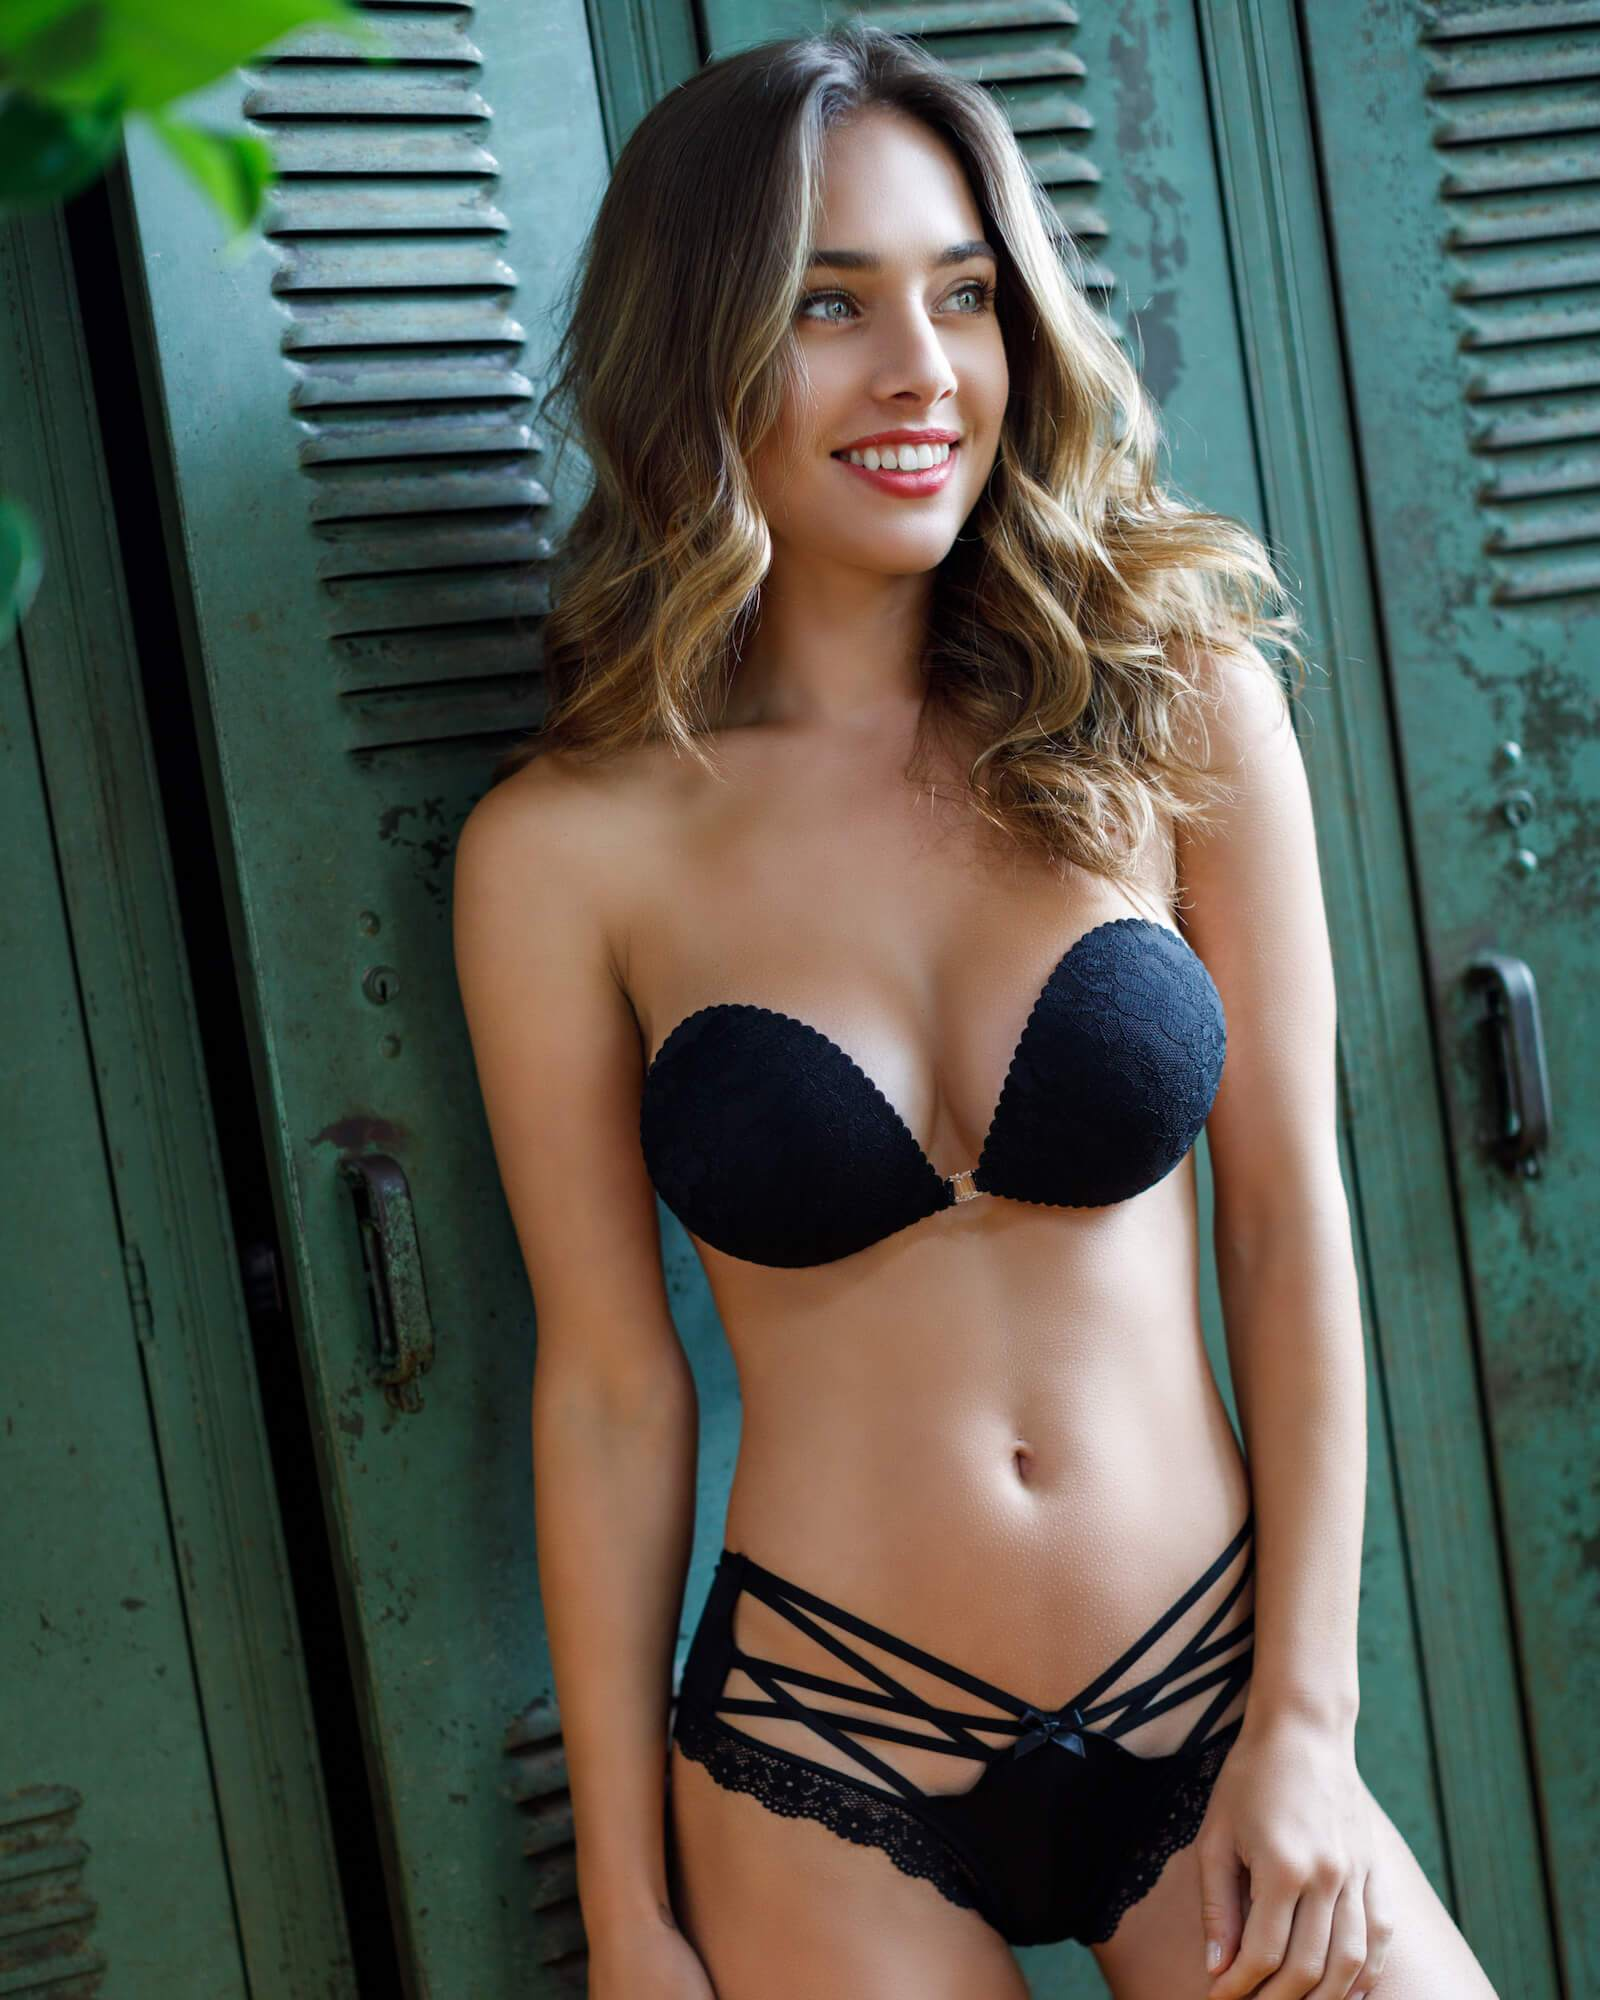 Buying and Wearing Lingerie